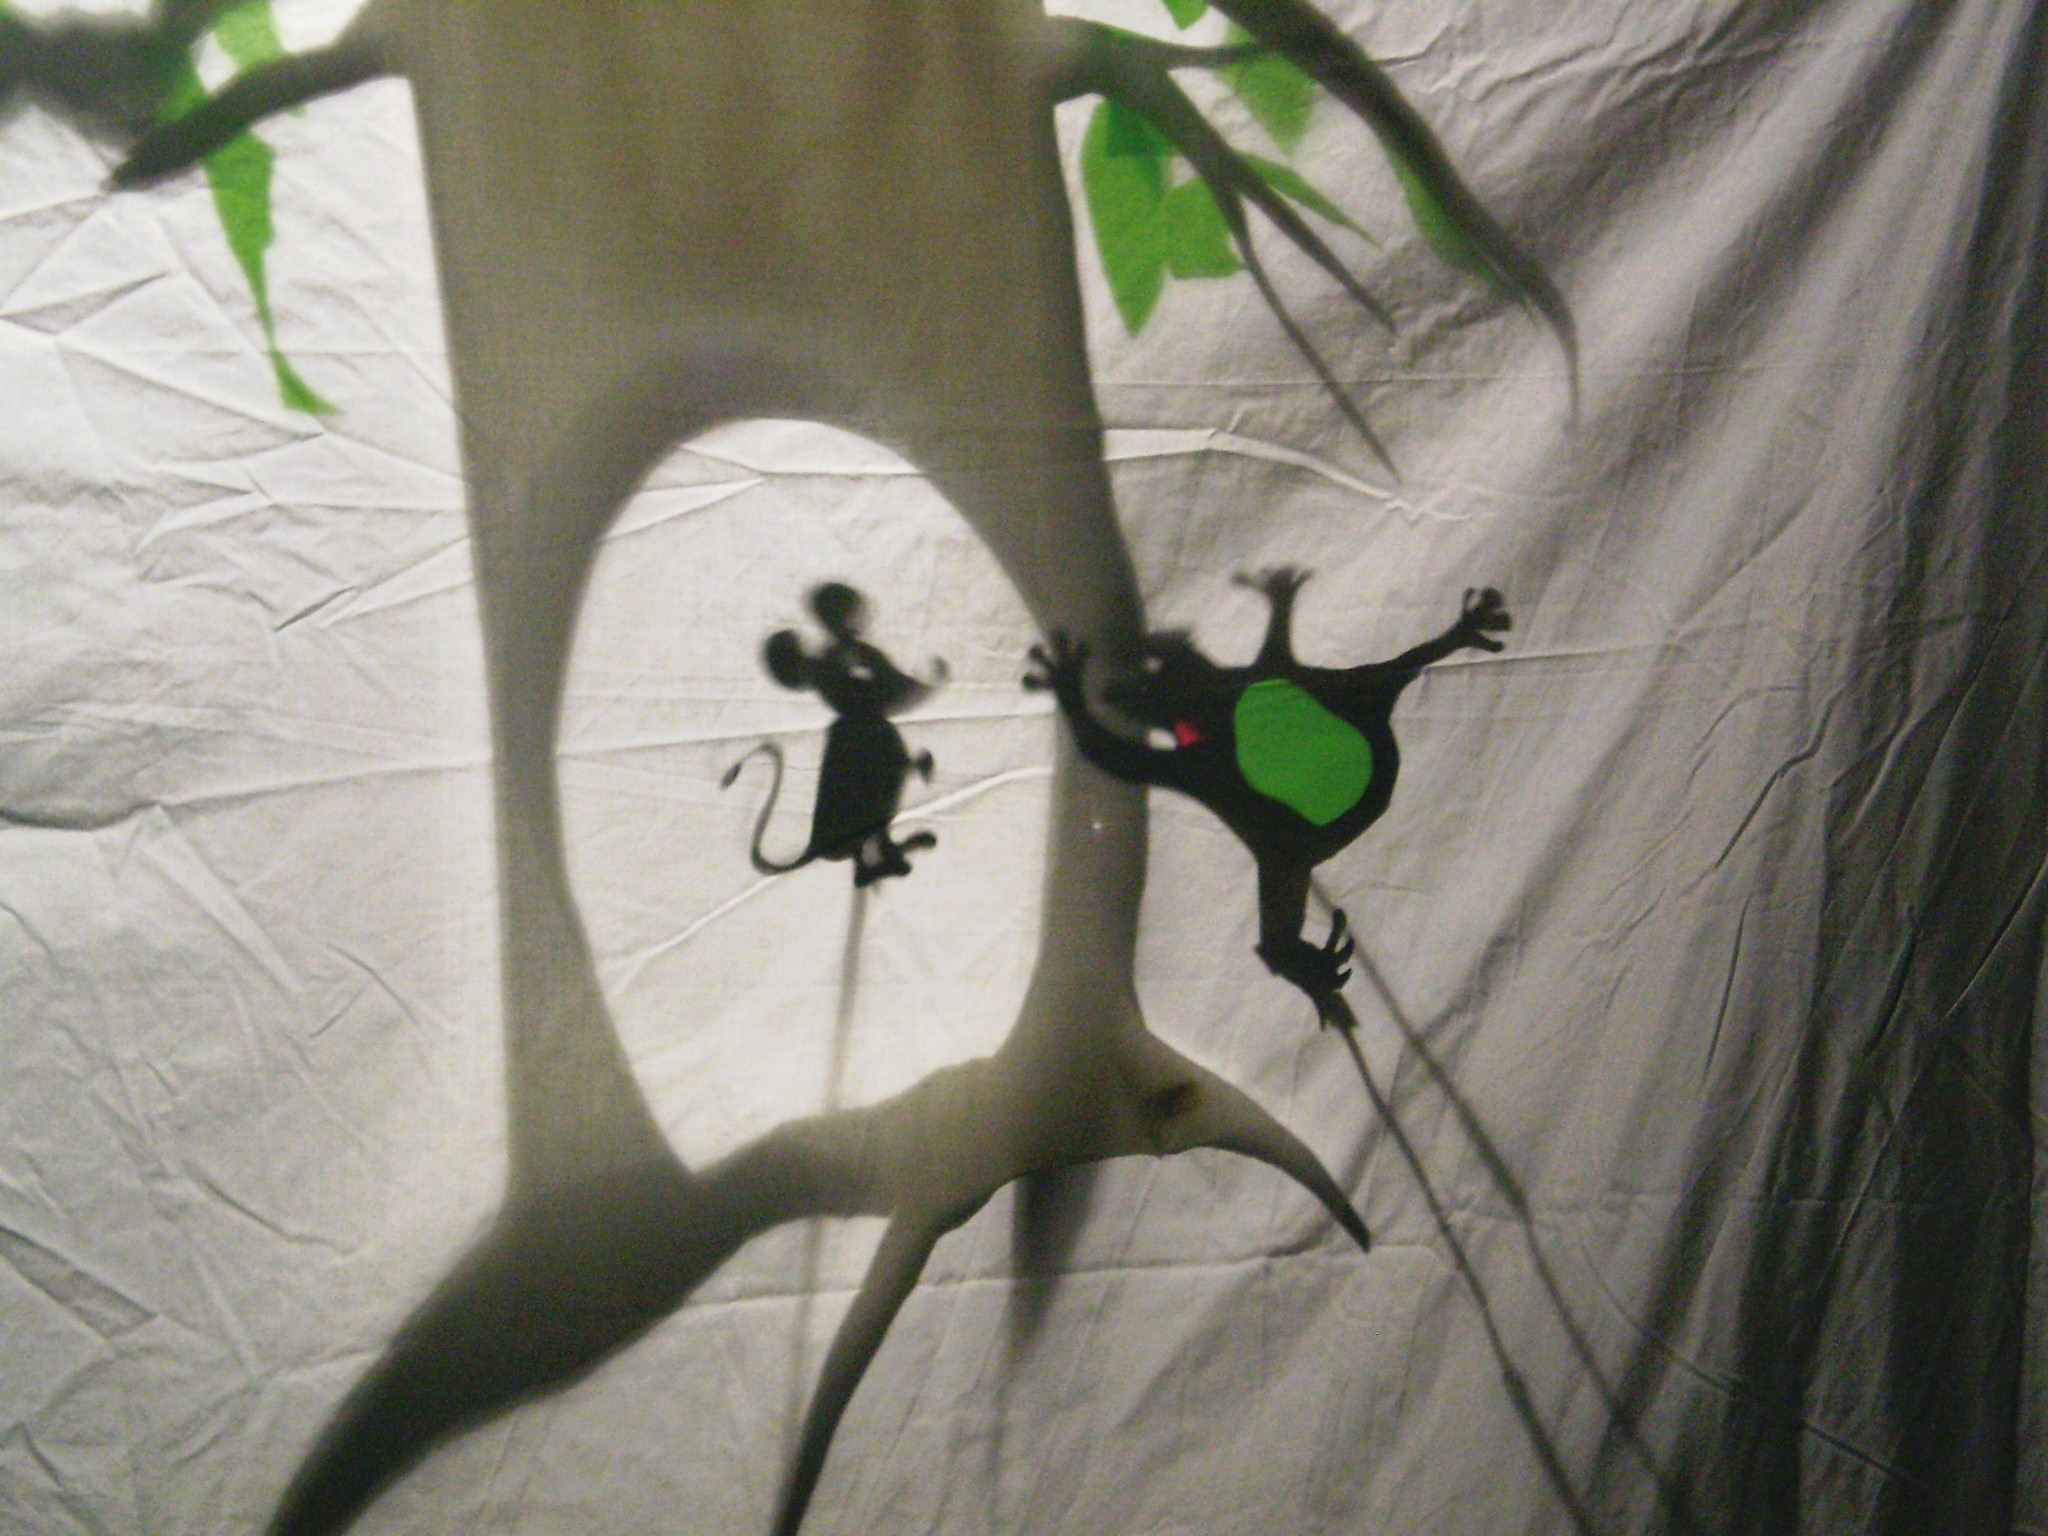 Shadow Puppets and set by students in the National College of Art and Design.